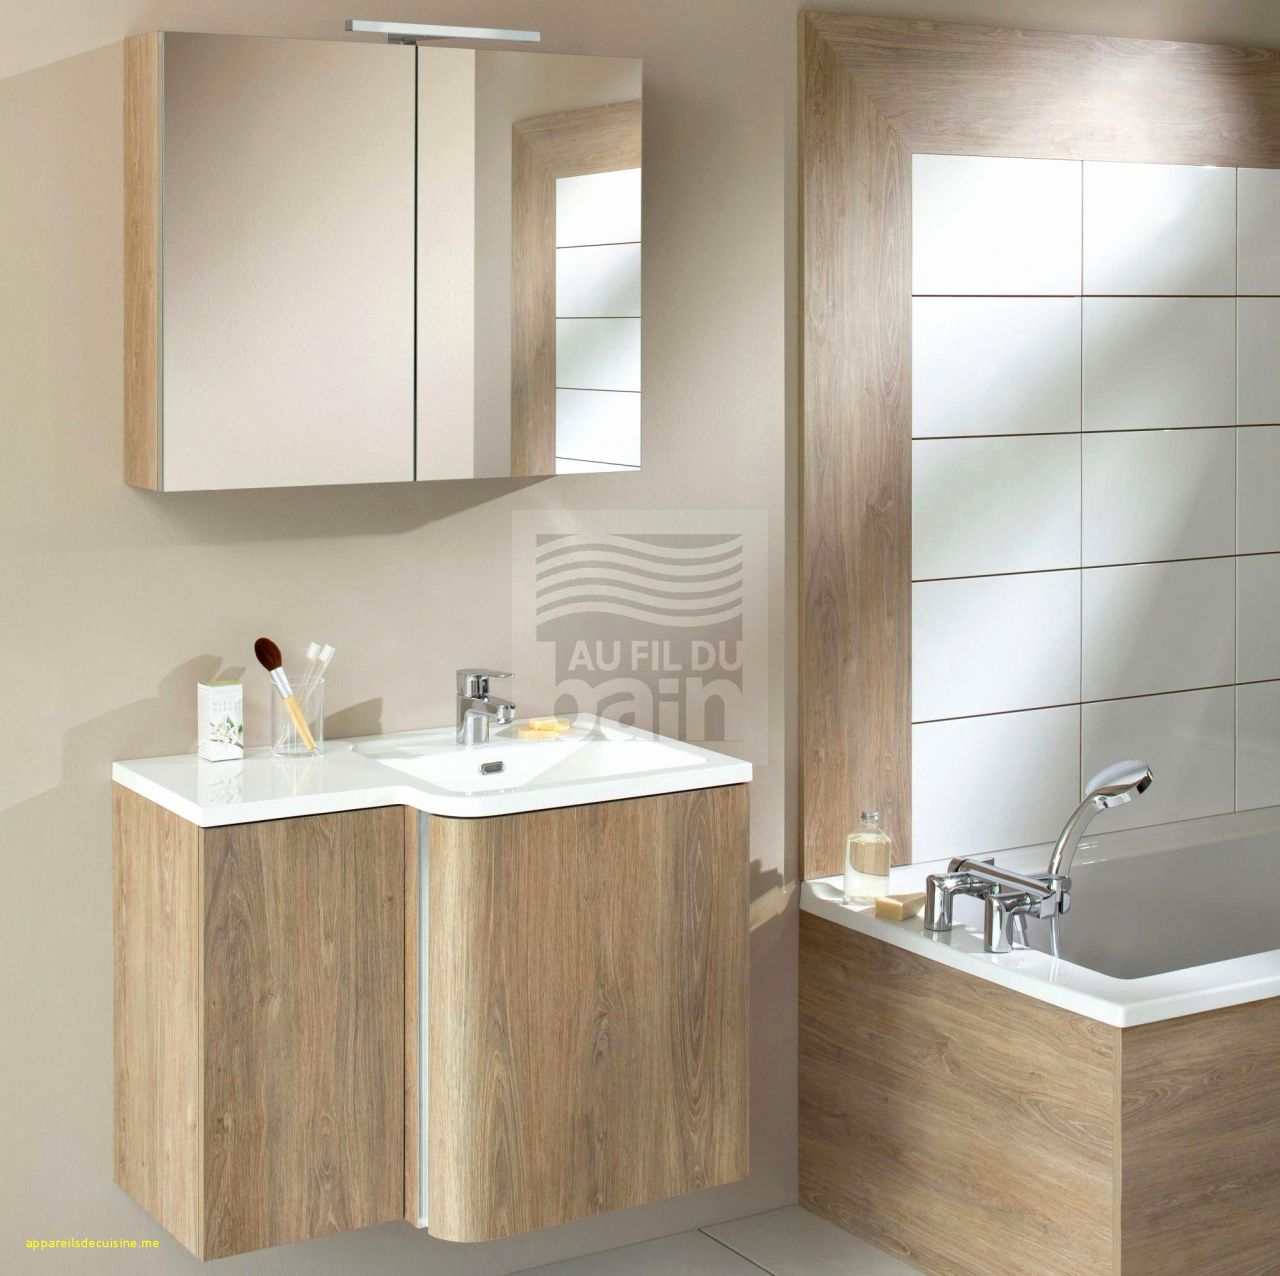 55 Meuble Lavabo Sur Pied Bathroom Kitchens Bathrooms Entertaining House